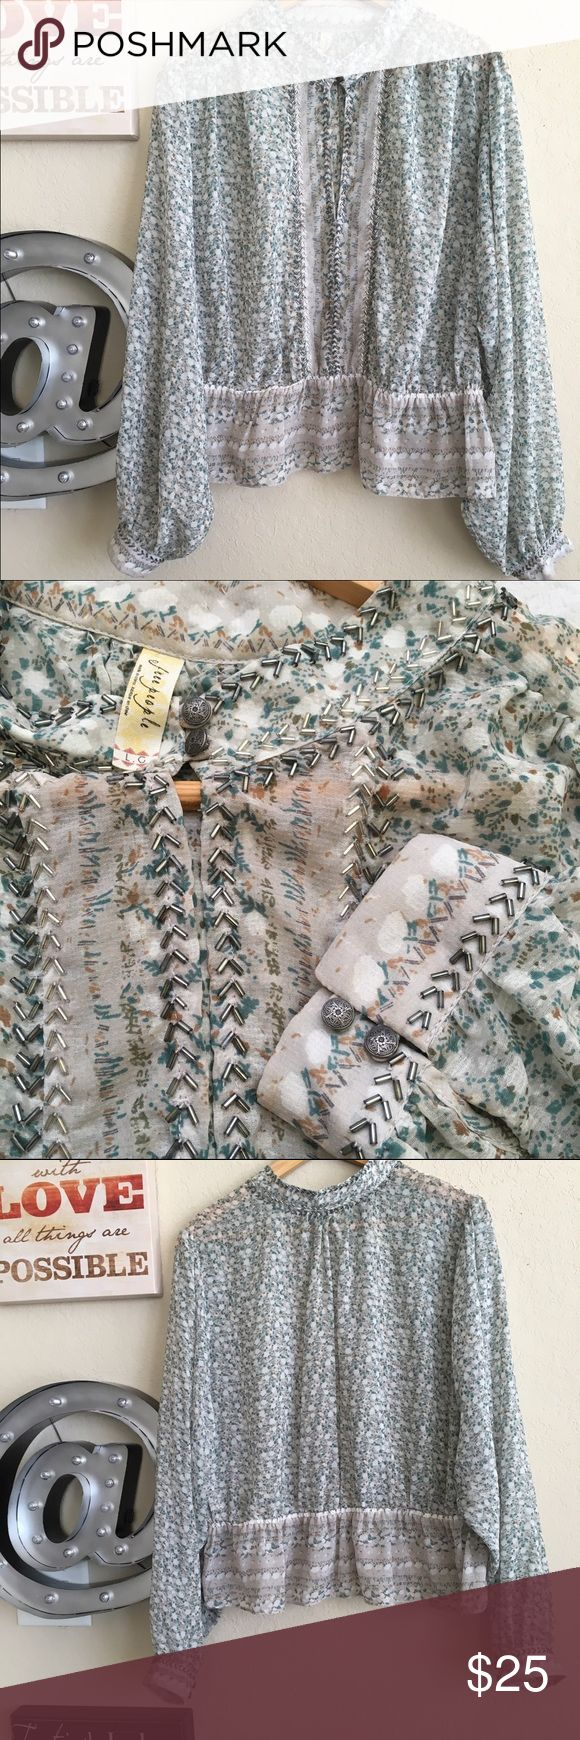 Beautiful Free people shirt Perfect condition, look like new, used twice, % polyester.  Brezy style shirt! Free People Tops Blouses